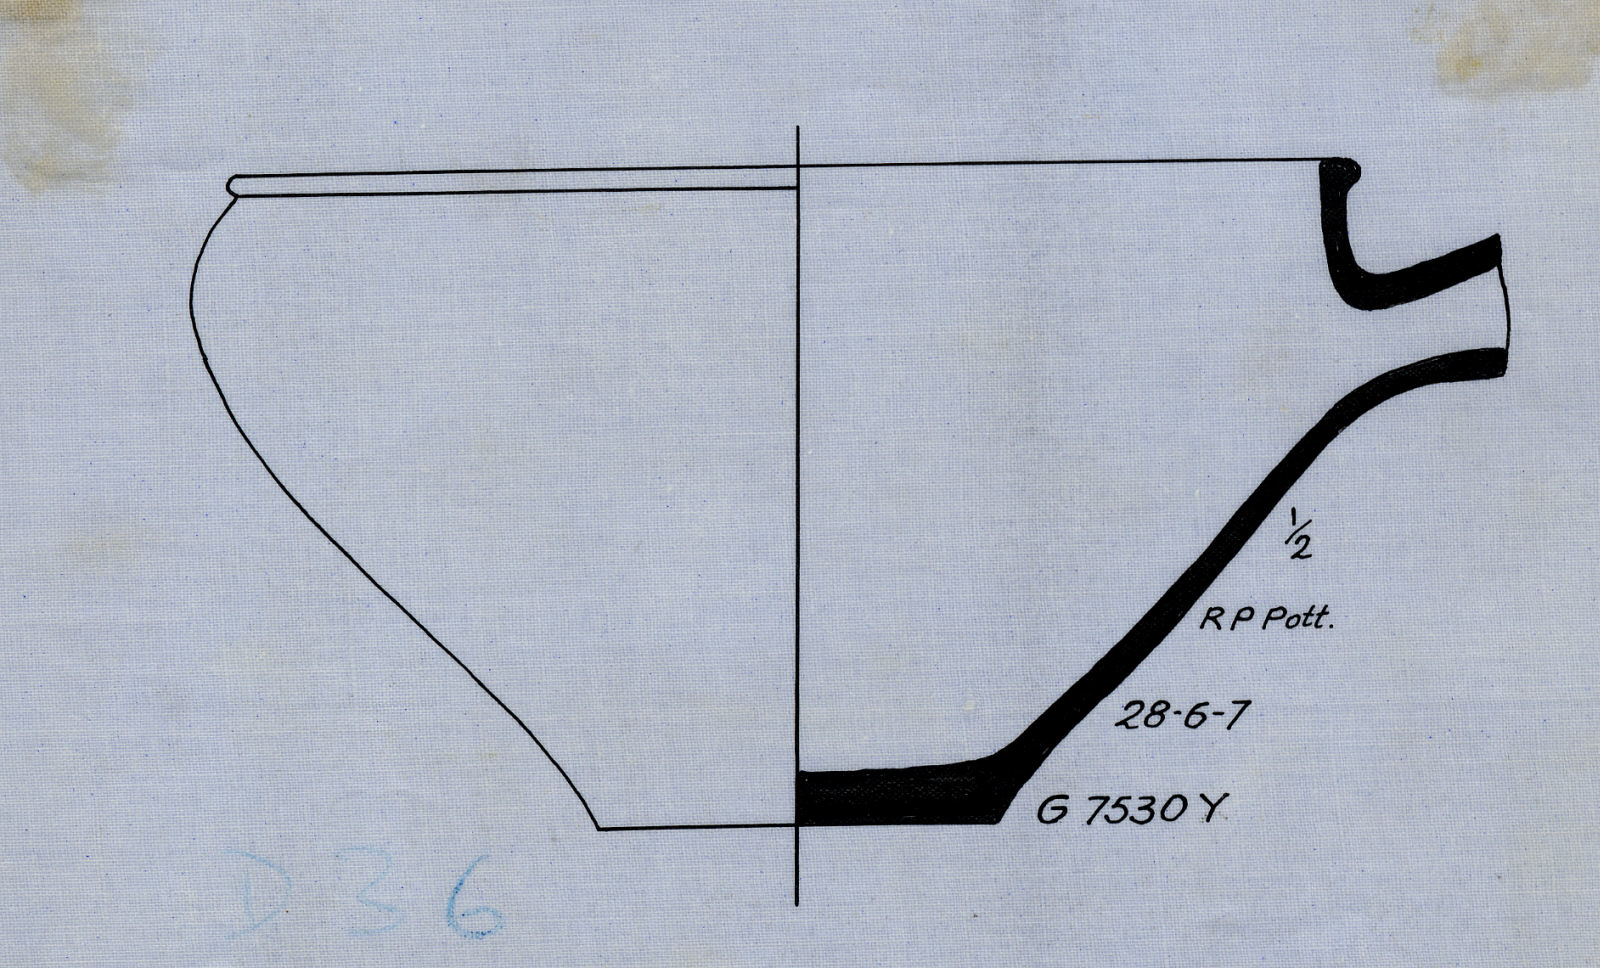 Drawings: G 7530, Shaft Y: pottery, basin with spout